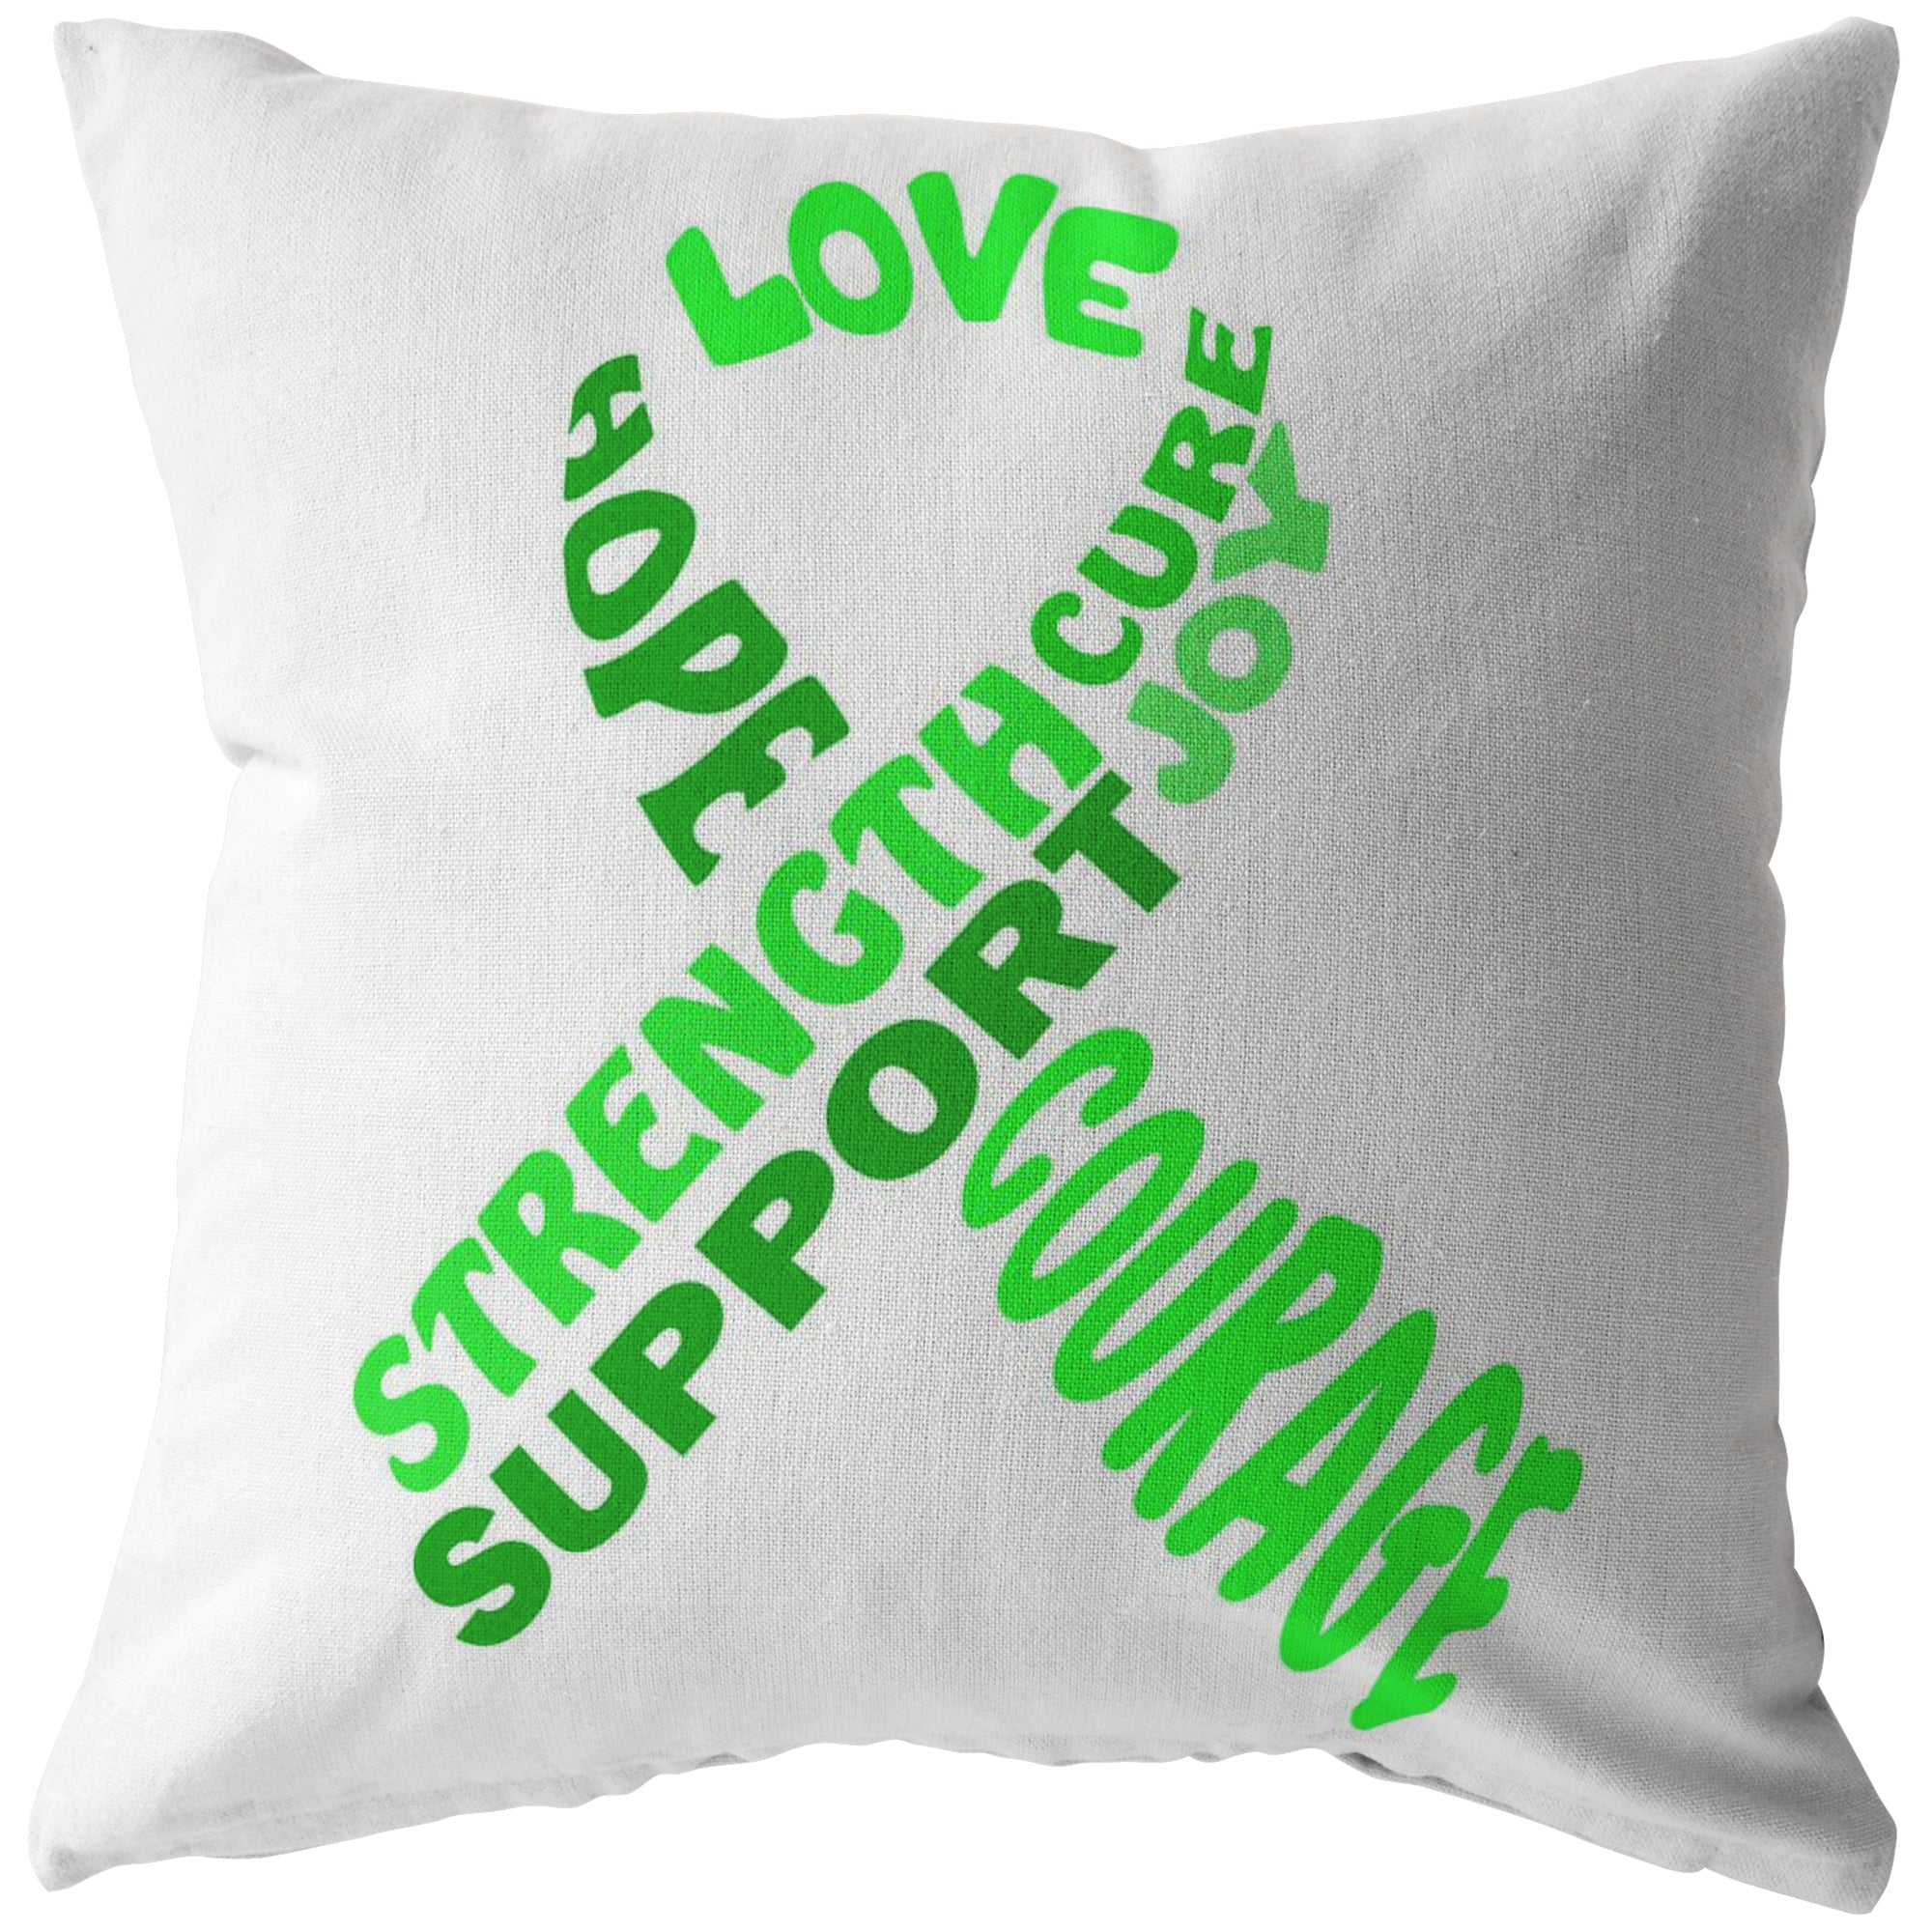 Green Awareness Ribbon With Words Pillow - The Unchargeables